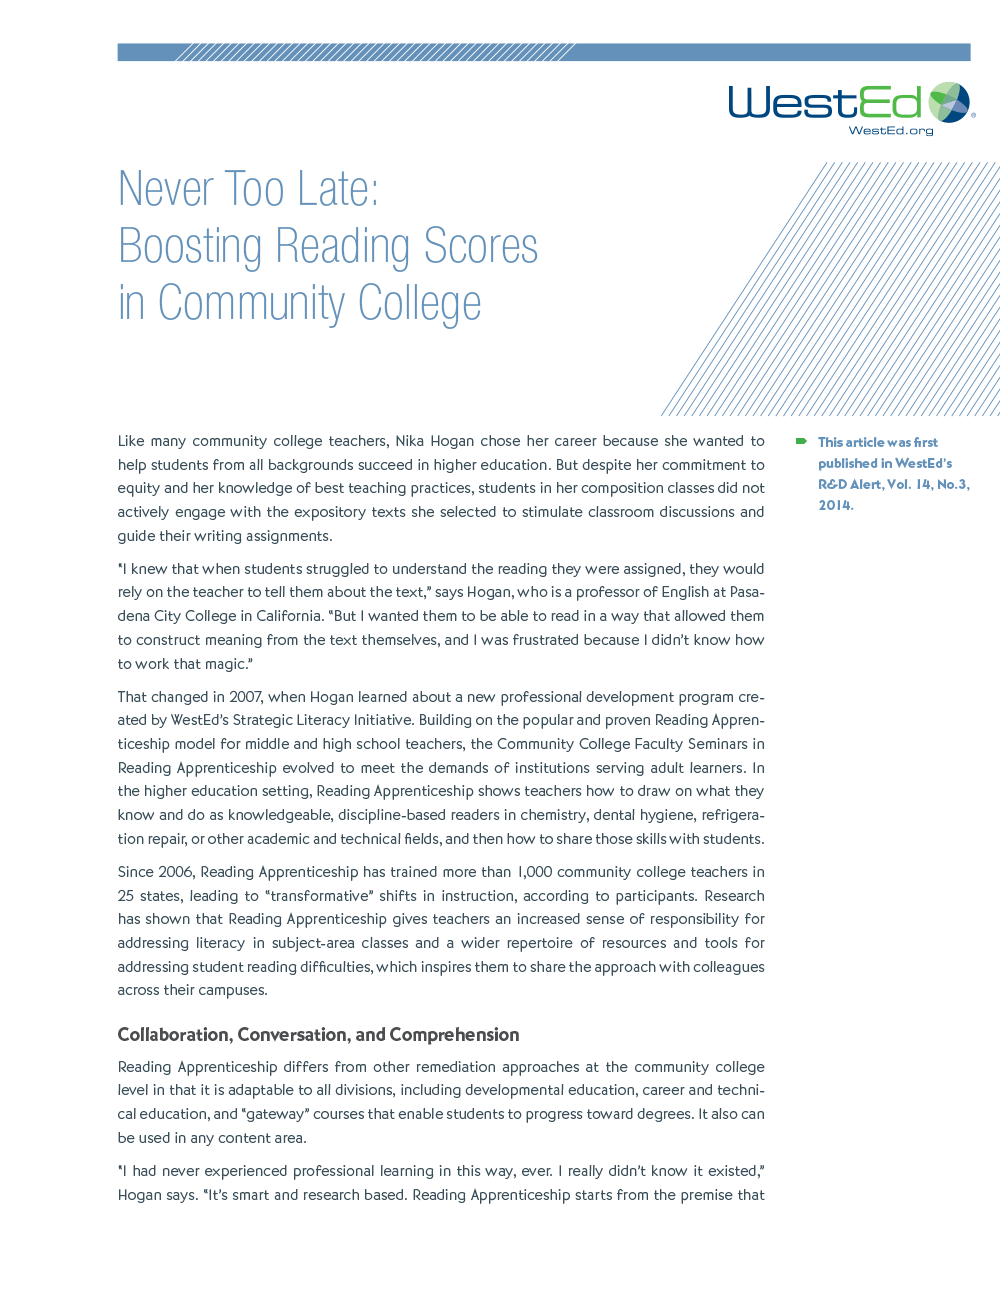 Cover image for Article: Never Too Late: Boosting Reading Skills in Community College